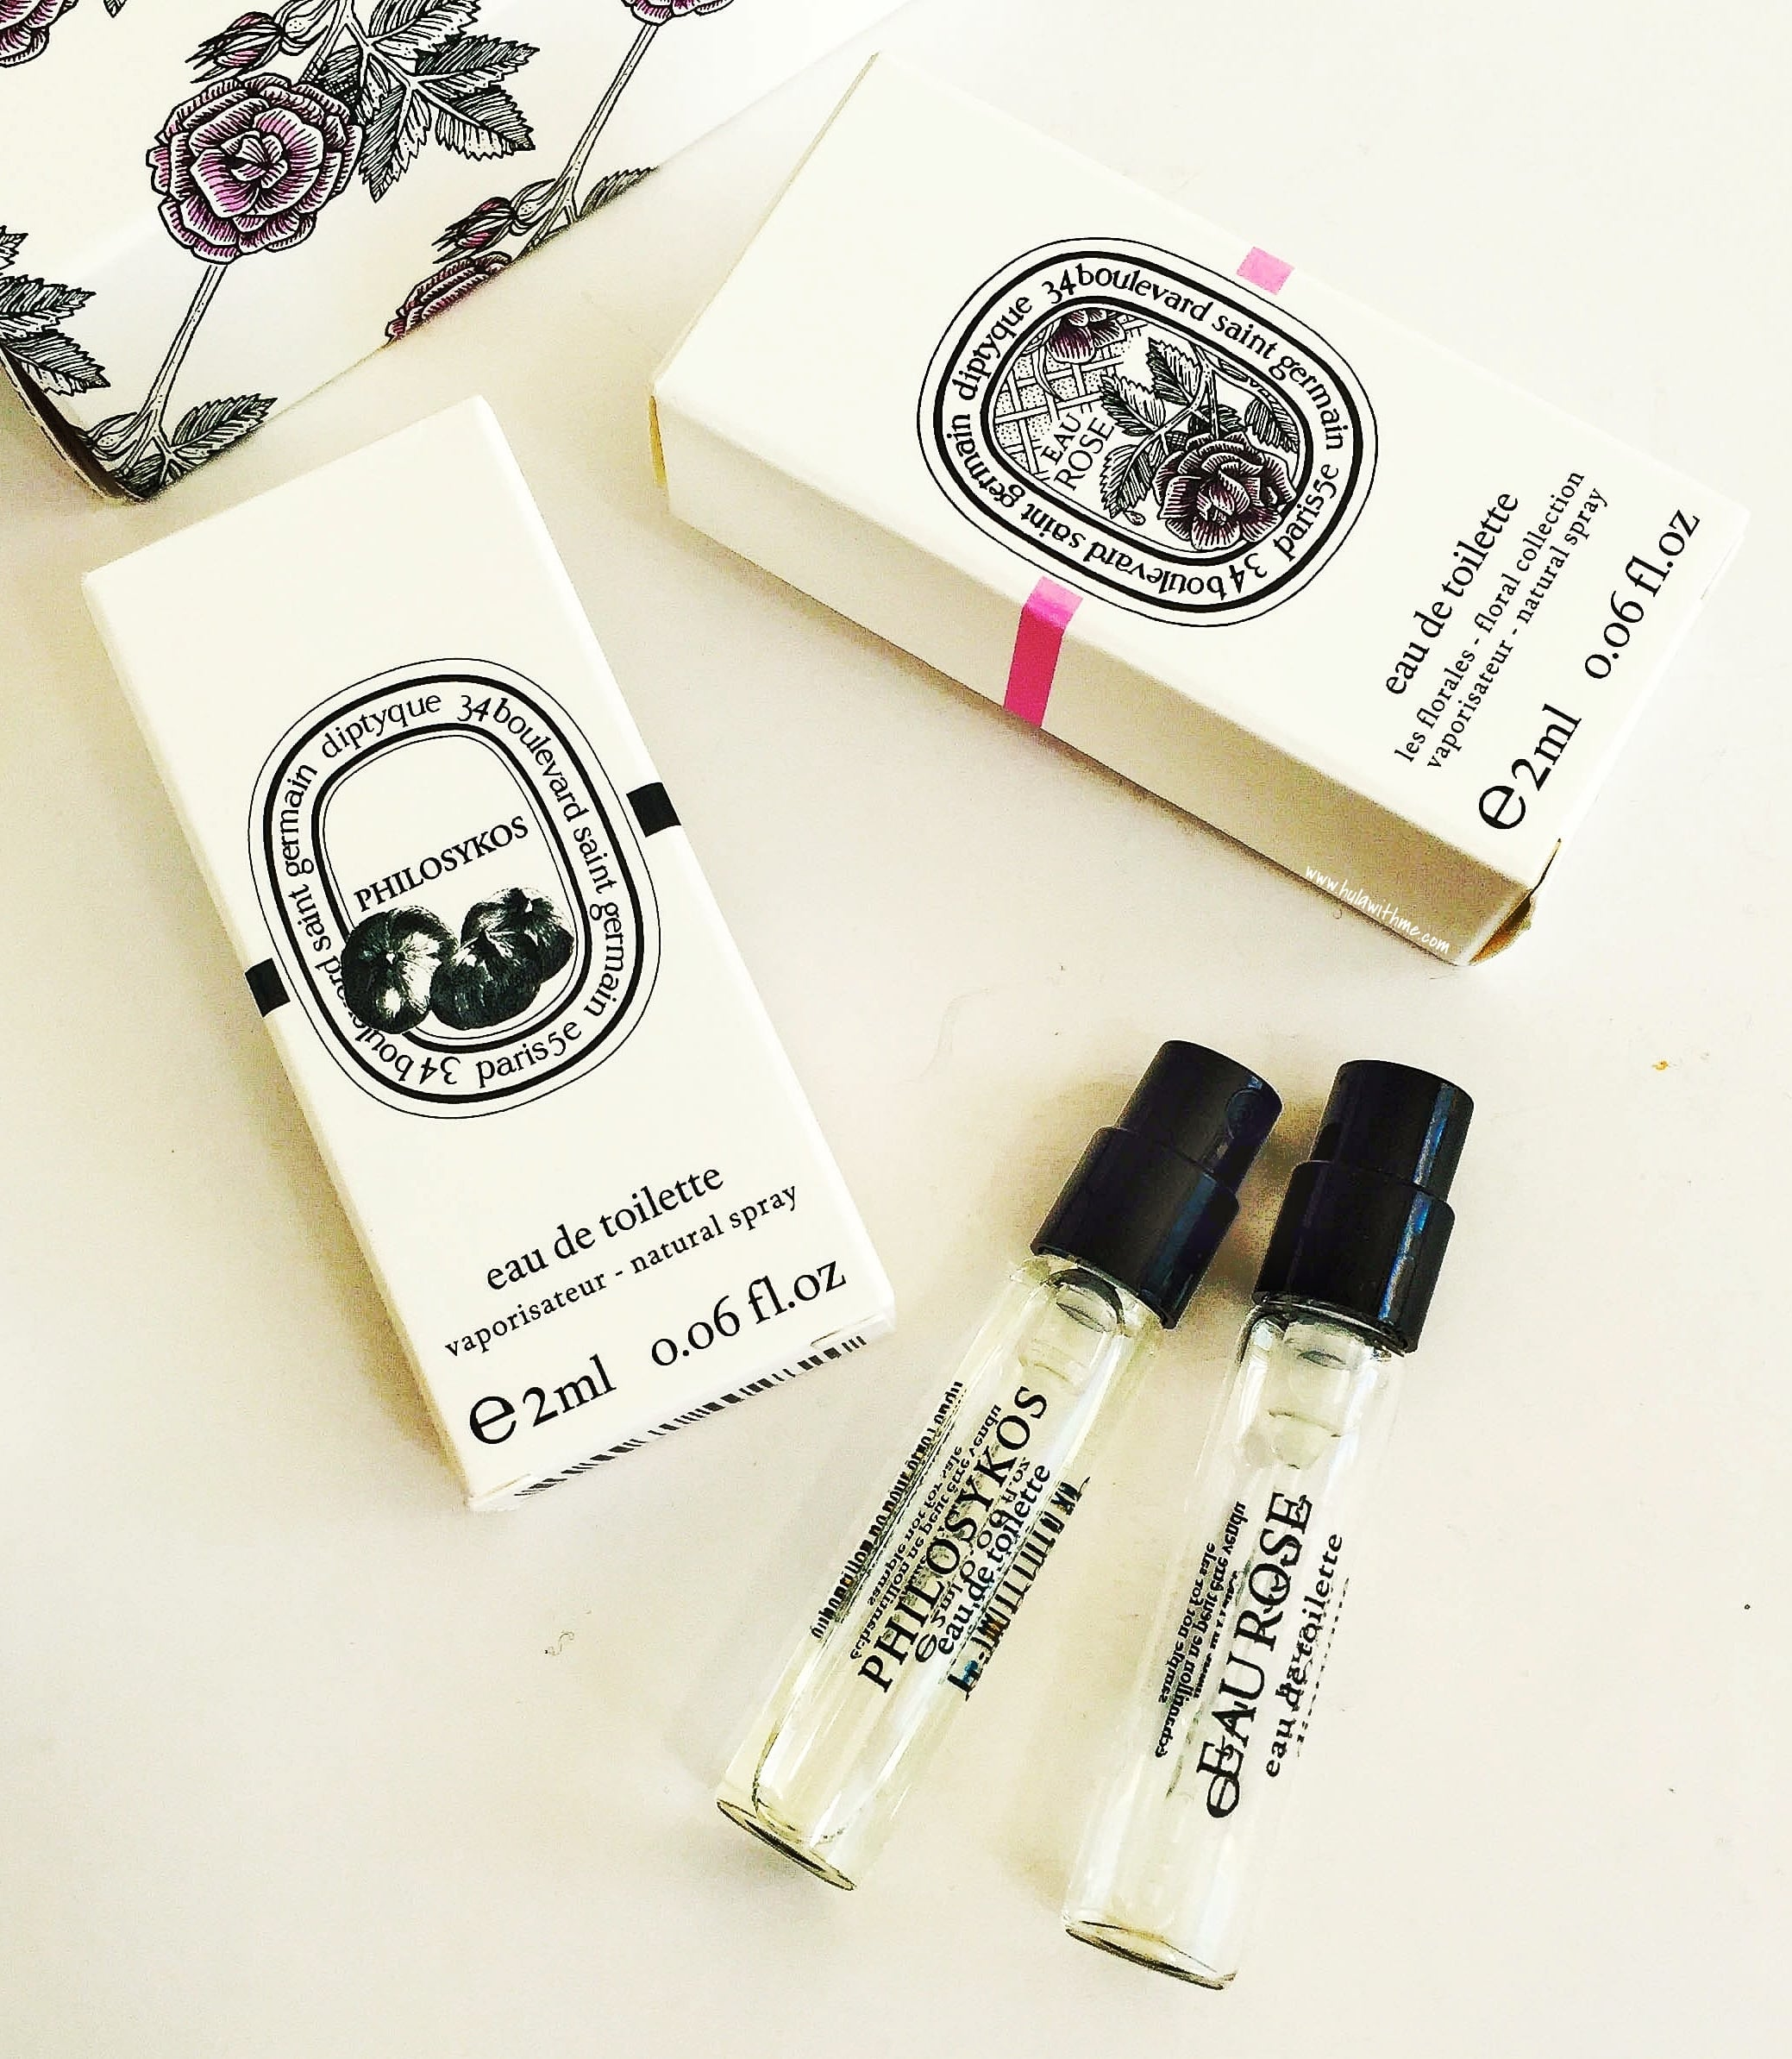 Diptyque Paris Eau de Toilette sample/trial size.